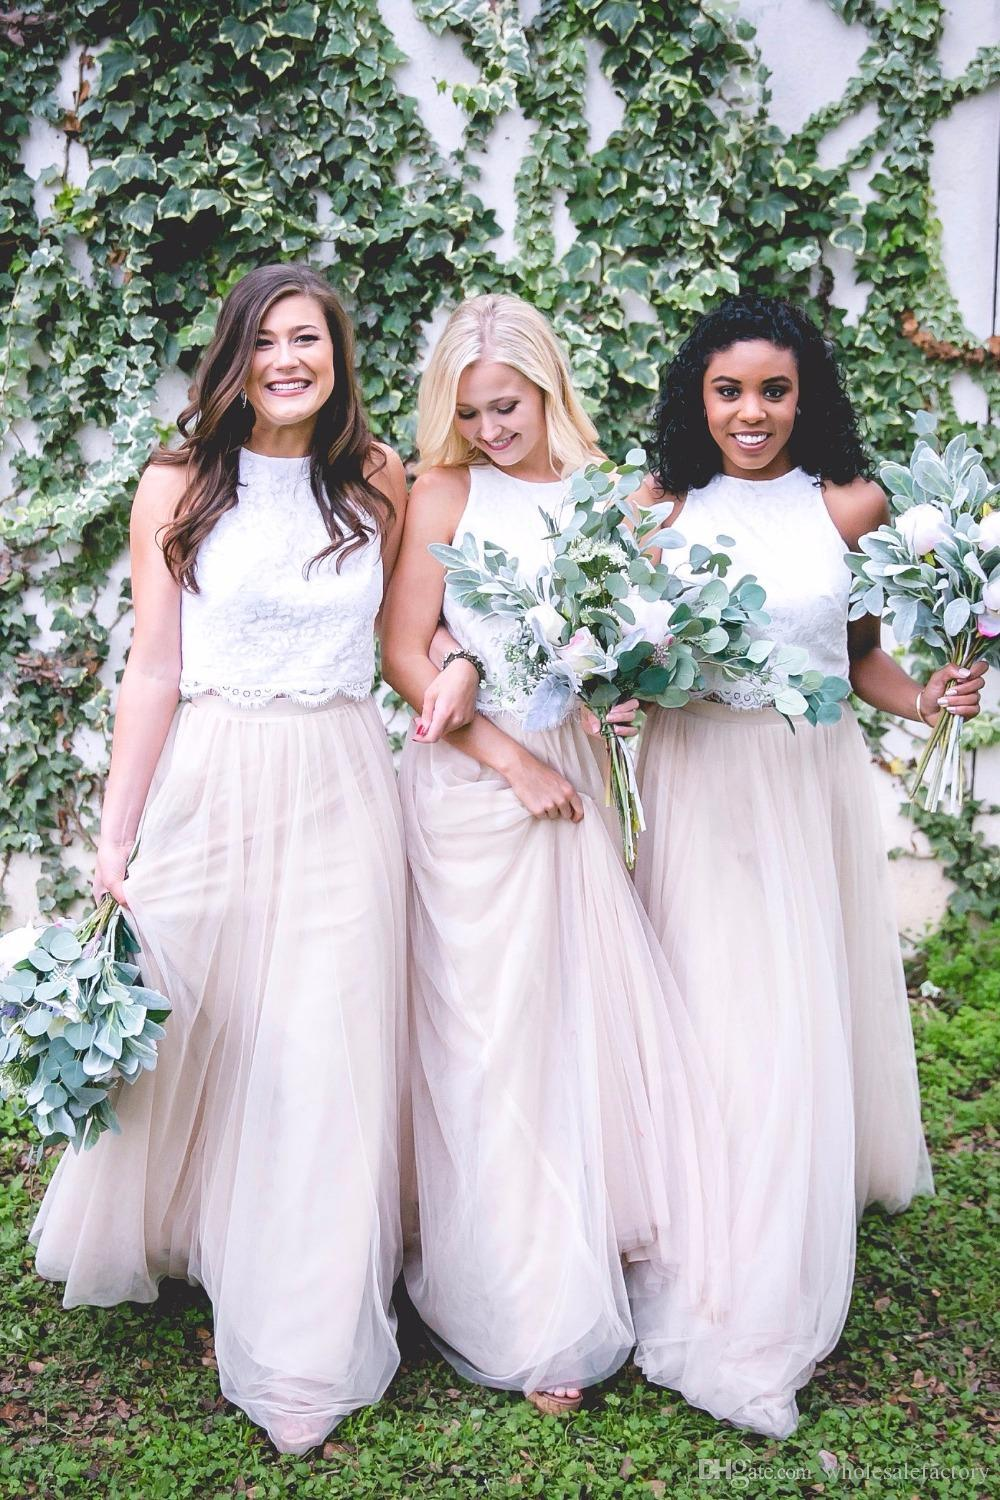 Hot Summer Garden Lace Tulle Bridesmaid Dresses Cheap 2017 A Line Two Pieces Halter Neck Long Maid of Honor Wedding Guest Dresses